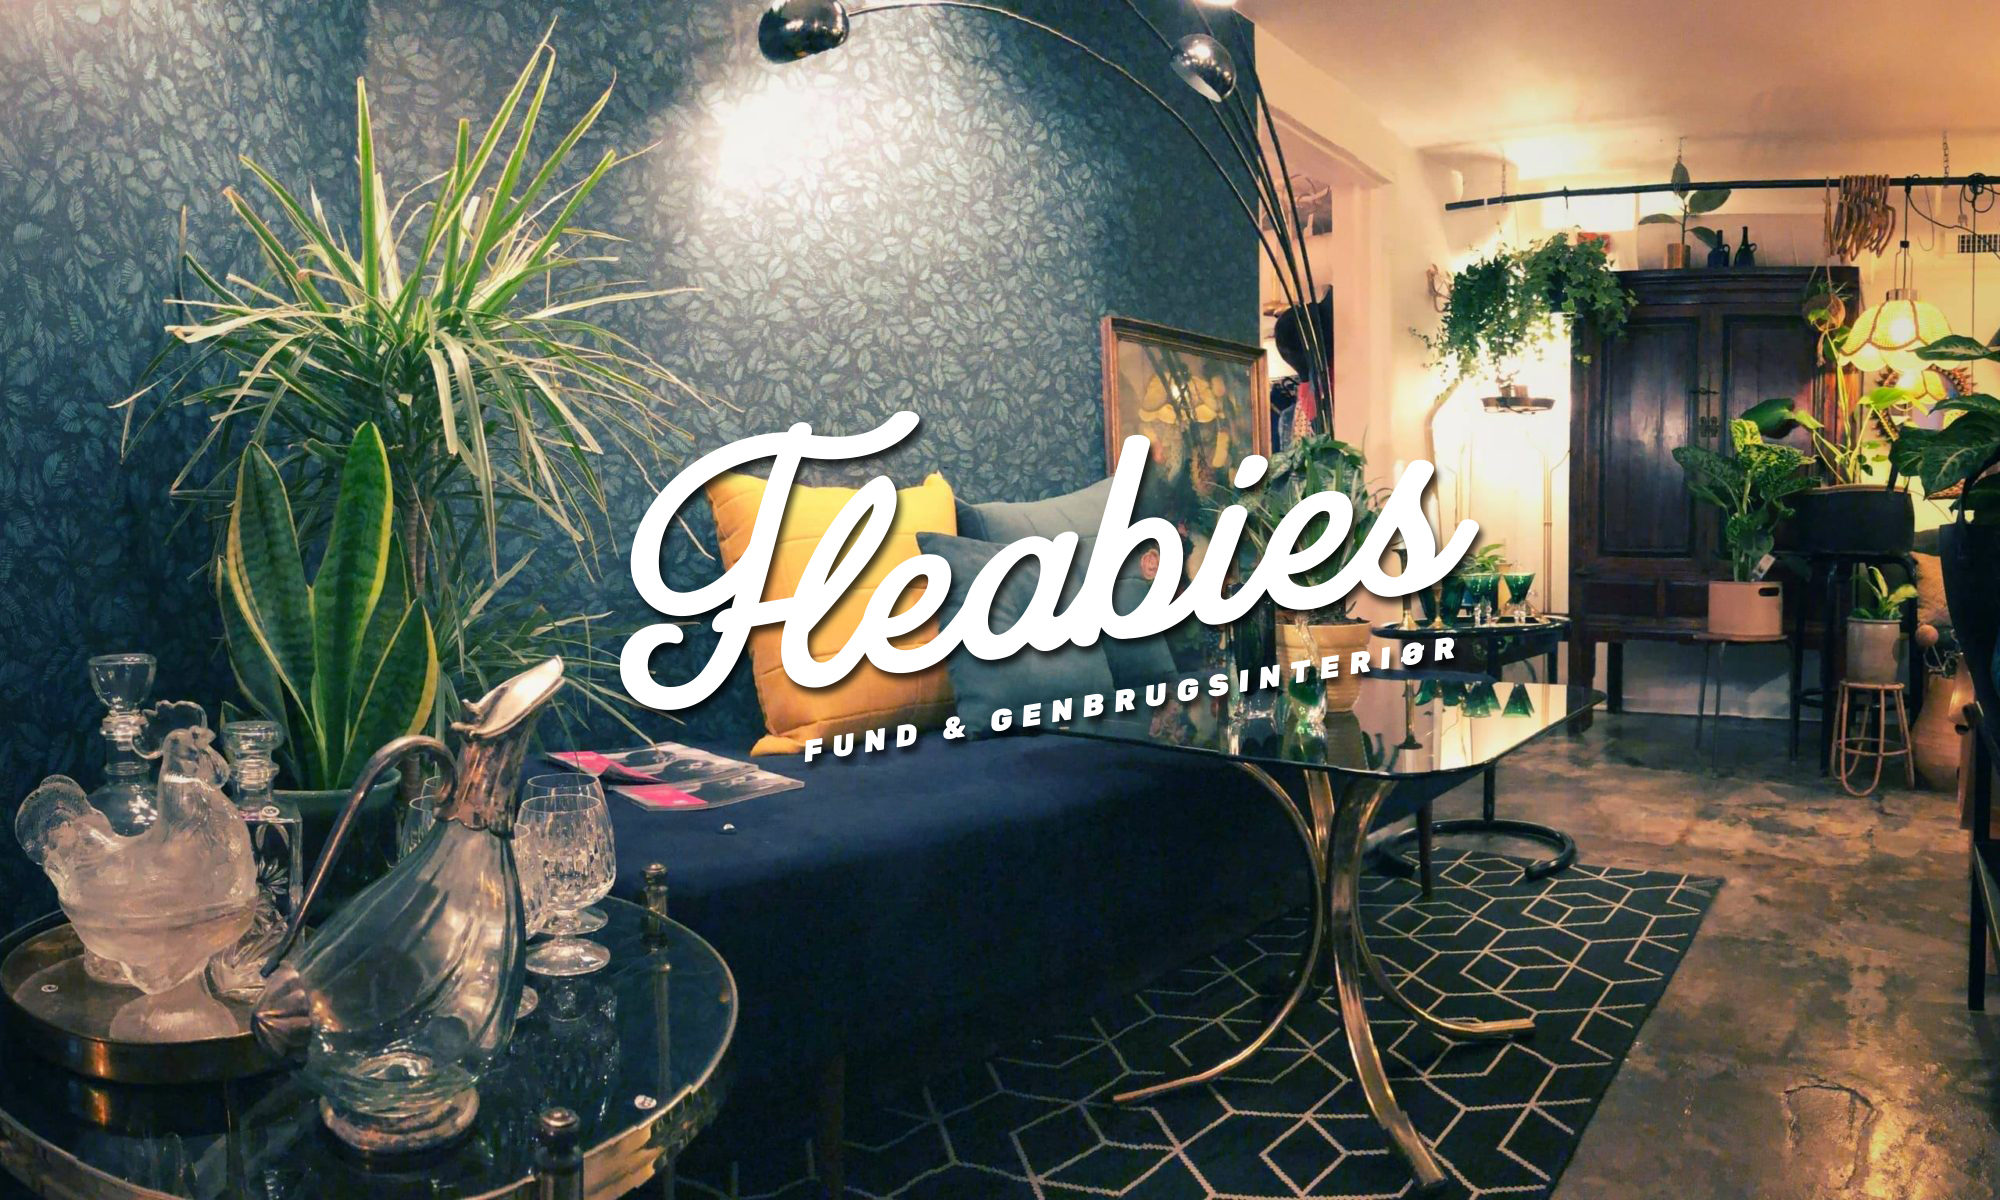 Fleabies